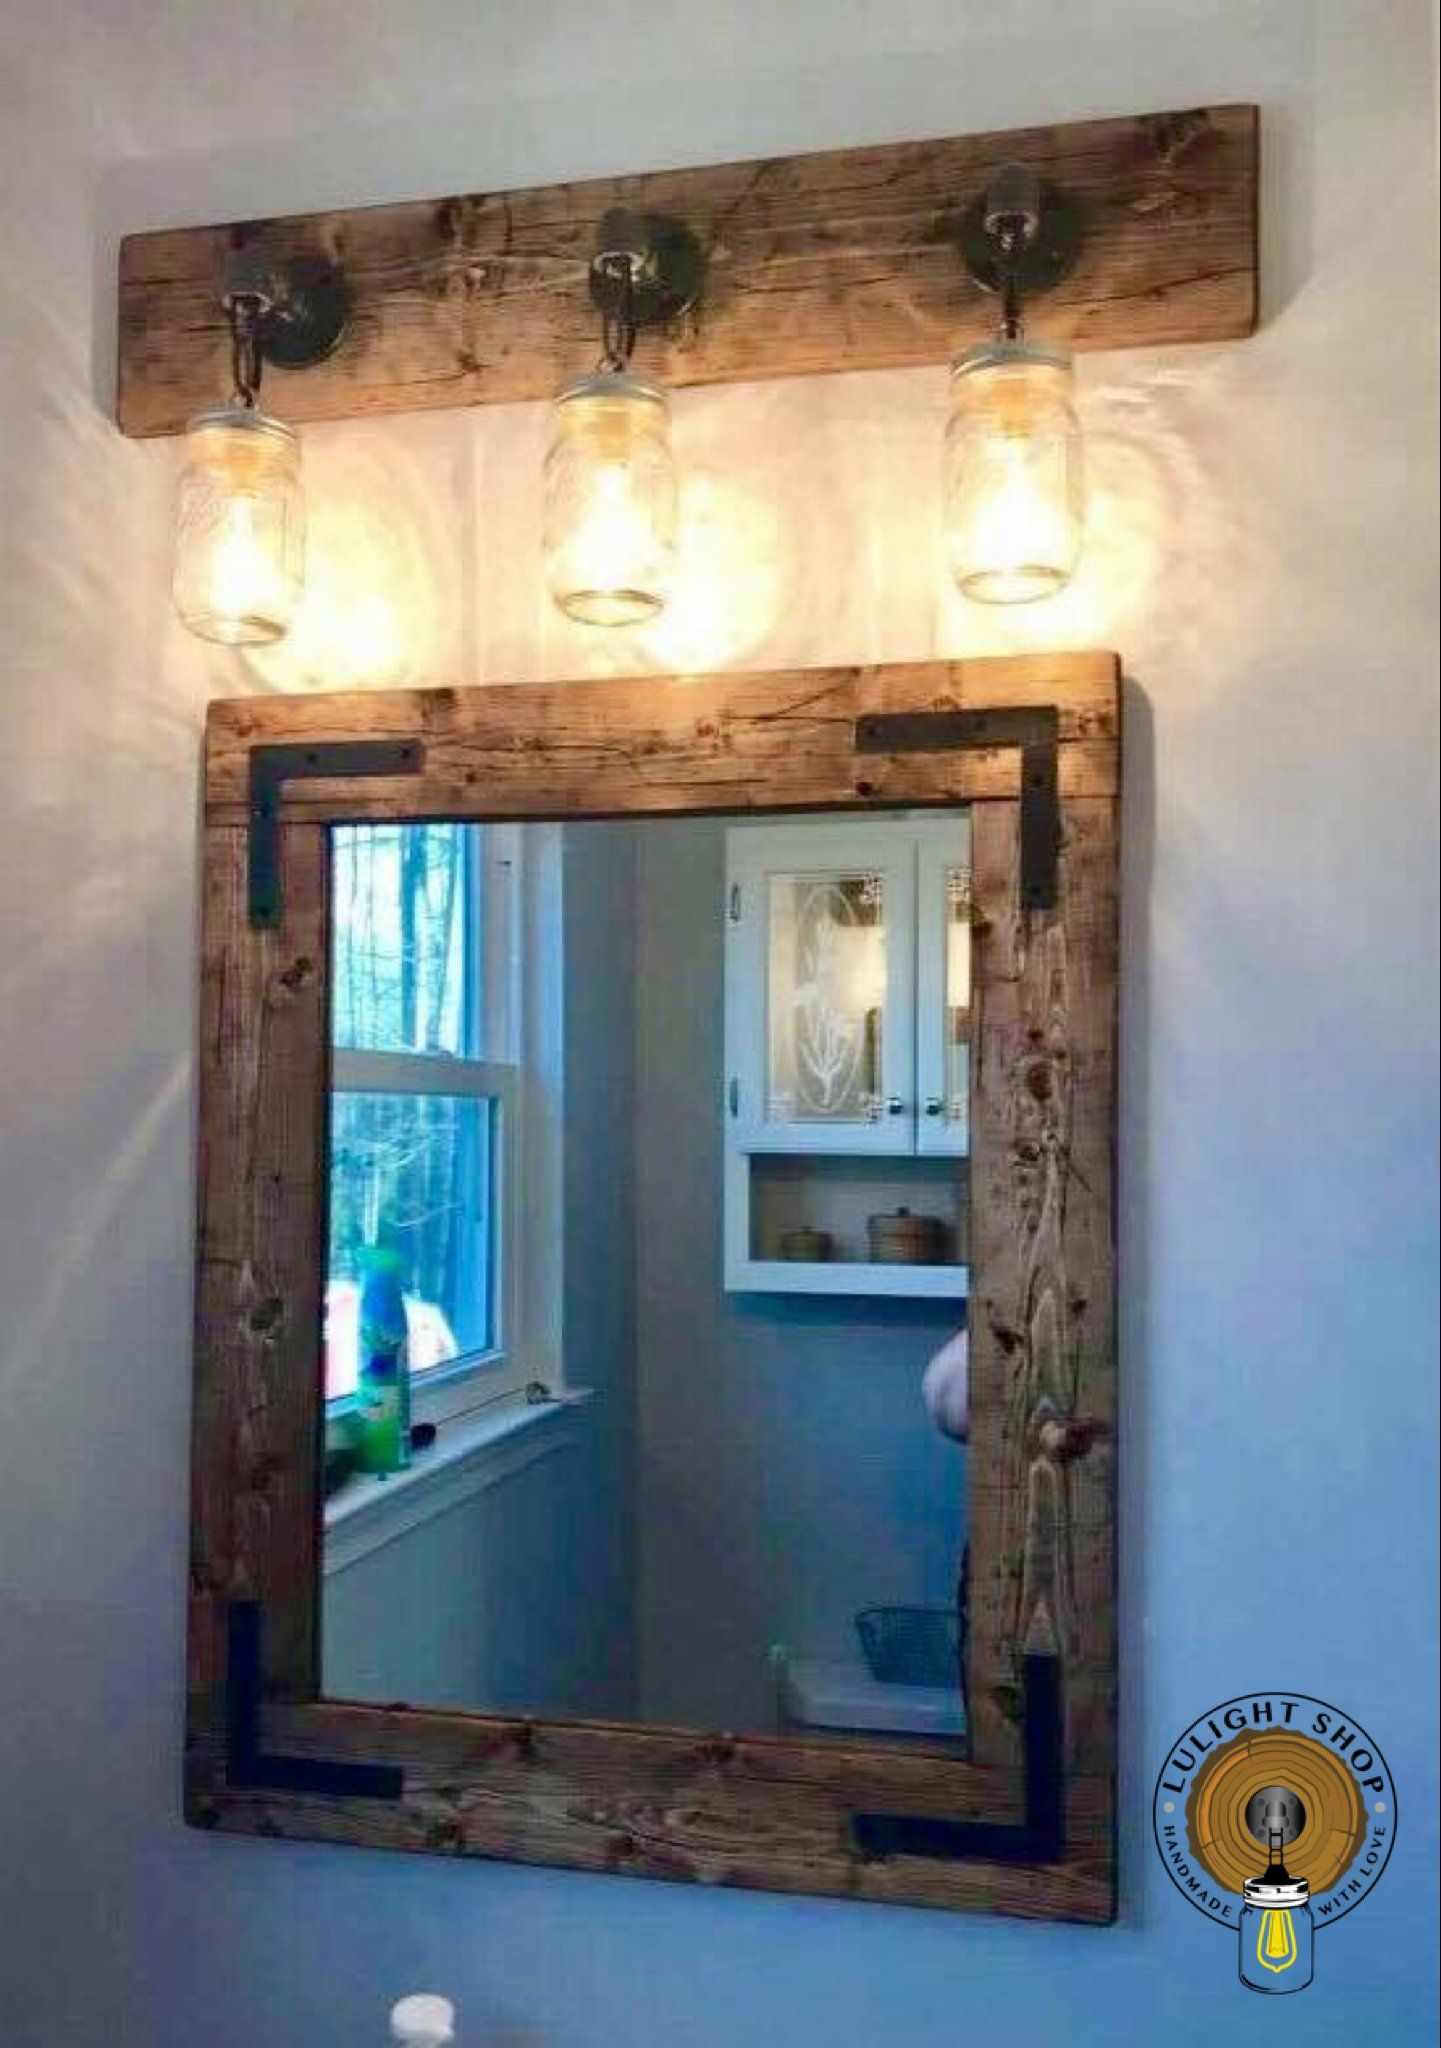 Rustic Distressed Bathroom Light Bathroom Decor Light For Bathroom Vanity Mason Jar Light I Mason Jar Light Fixture Farmhouse Mirrors Rustic Bathroom Decor